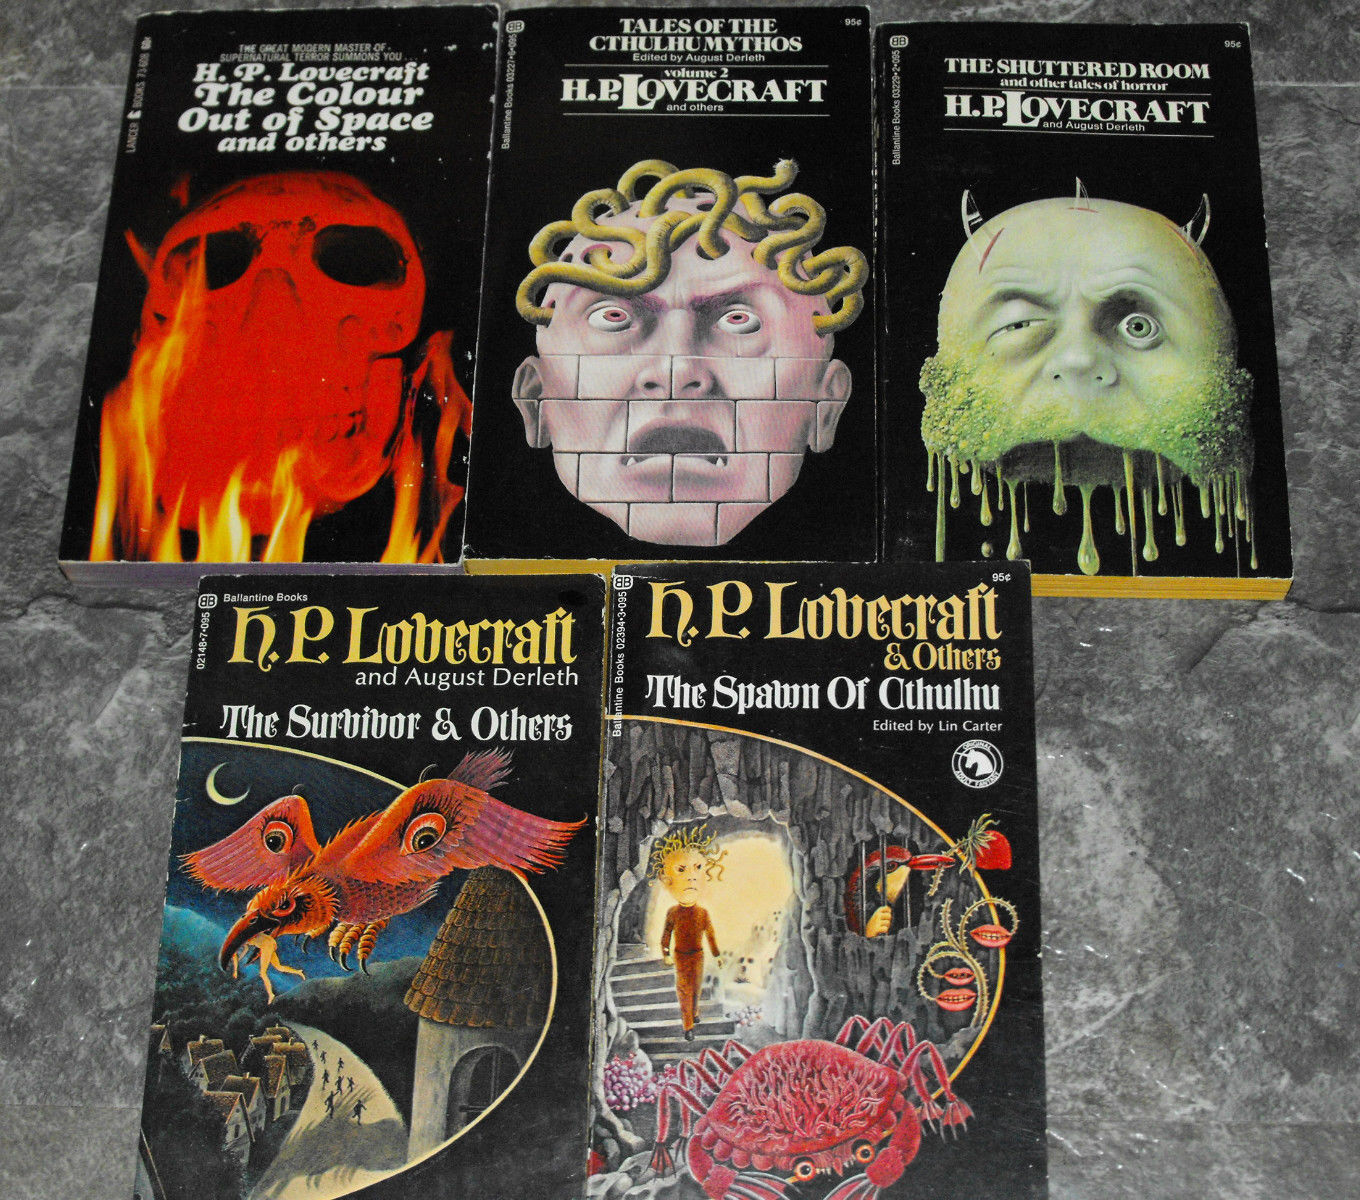 collected criticism essay h literary lovecraft p Collected essays of h p lovecraftliterary criticism by h p lovecraft 2004 04 01 summary : ebook pdf collected essays of h p lovecraftliterary criticism by h p.